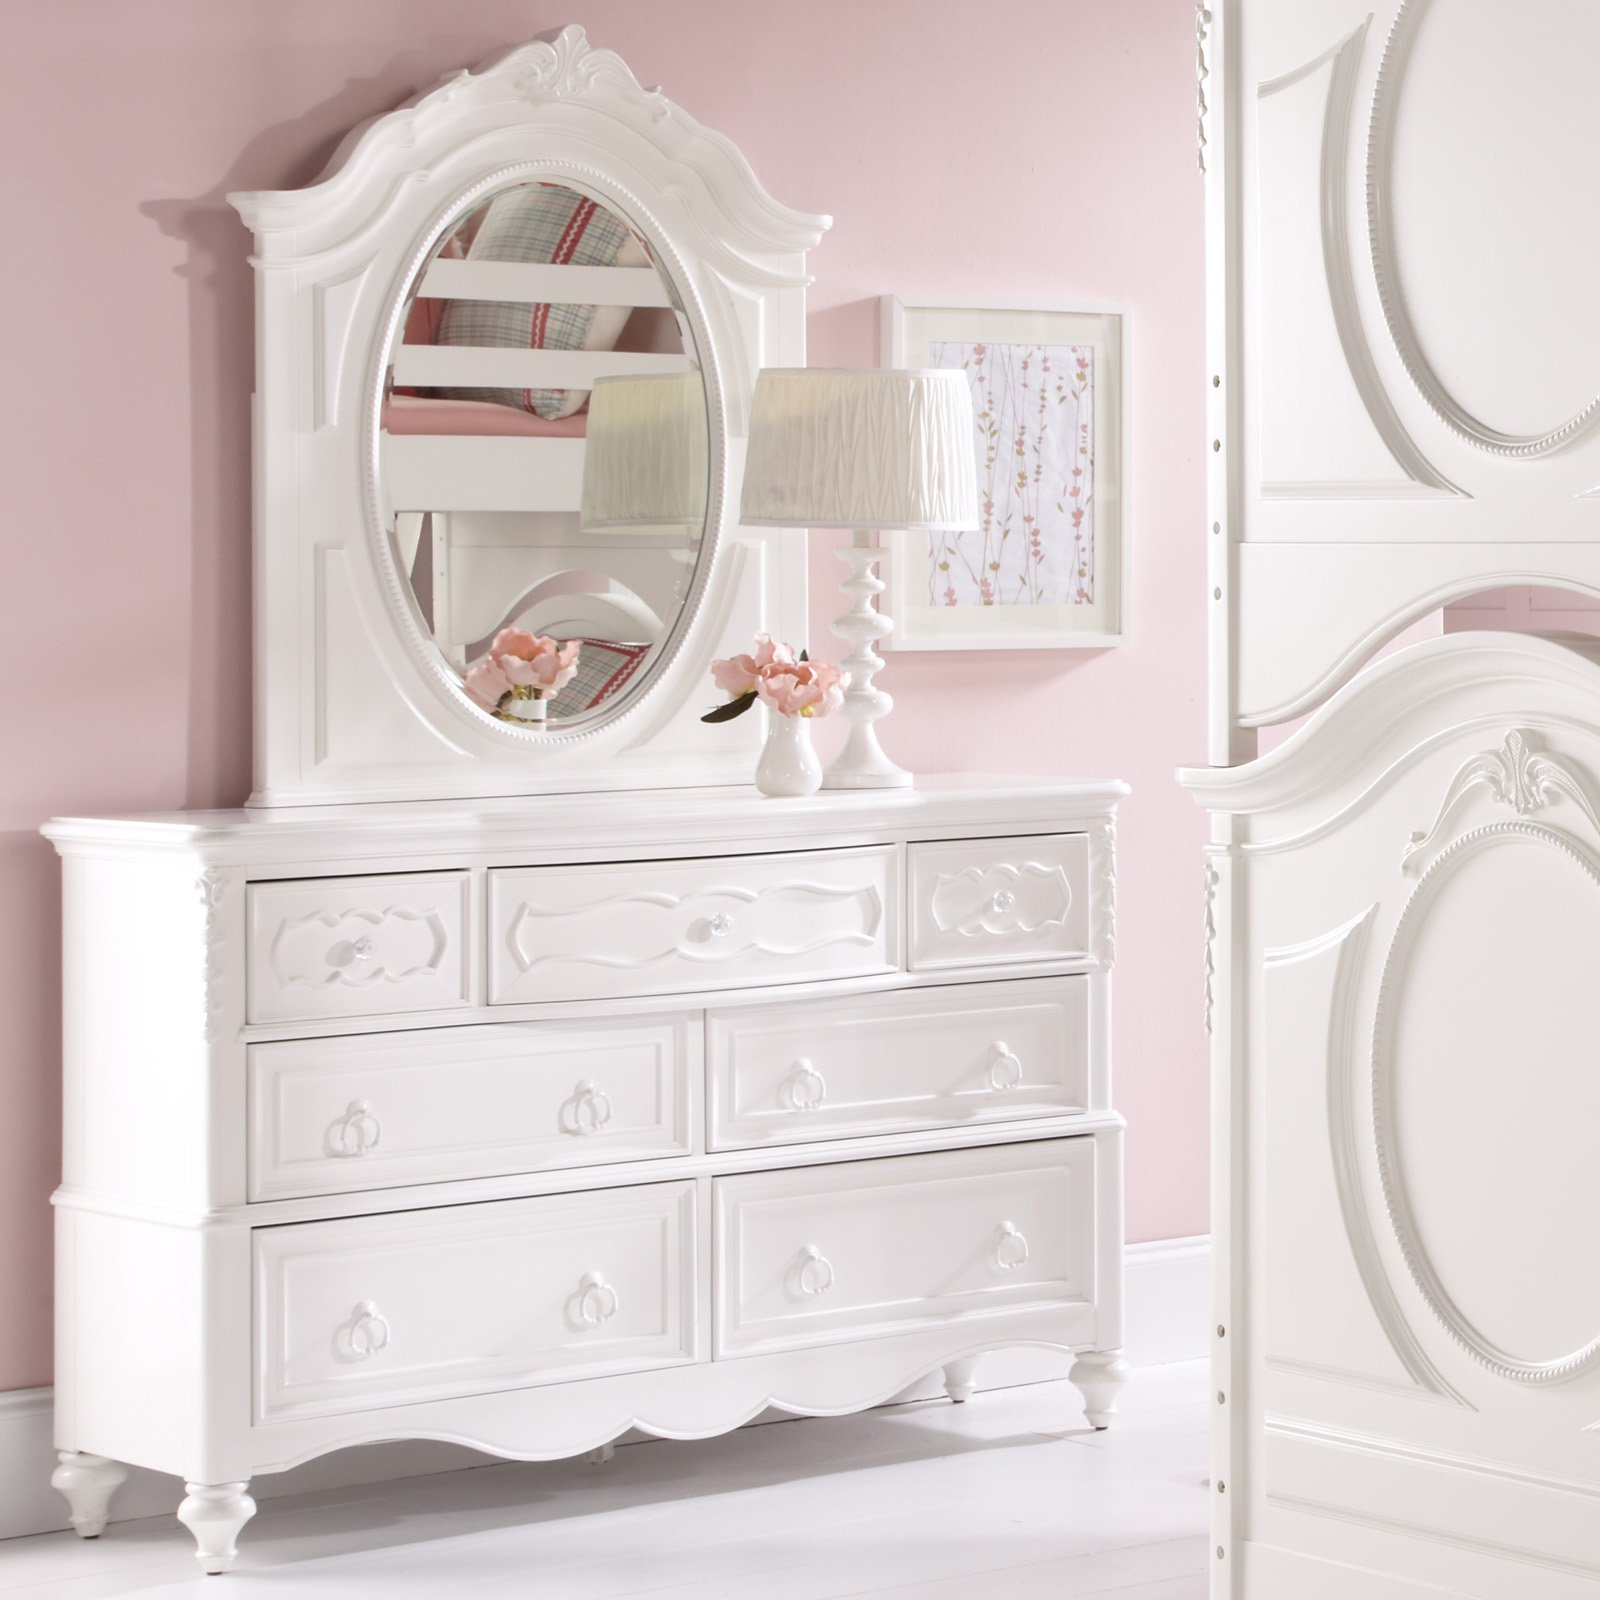 Picture of: Drawer Dresser Mirror